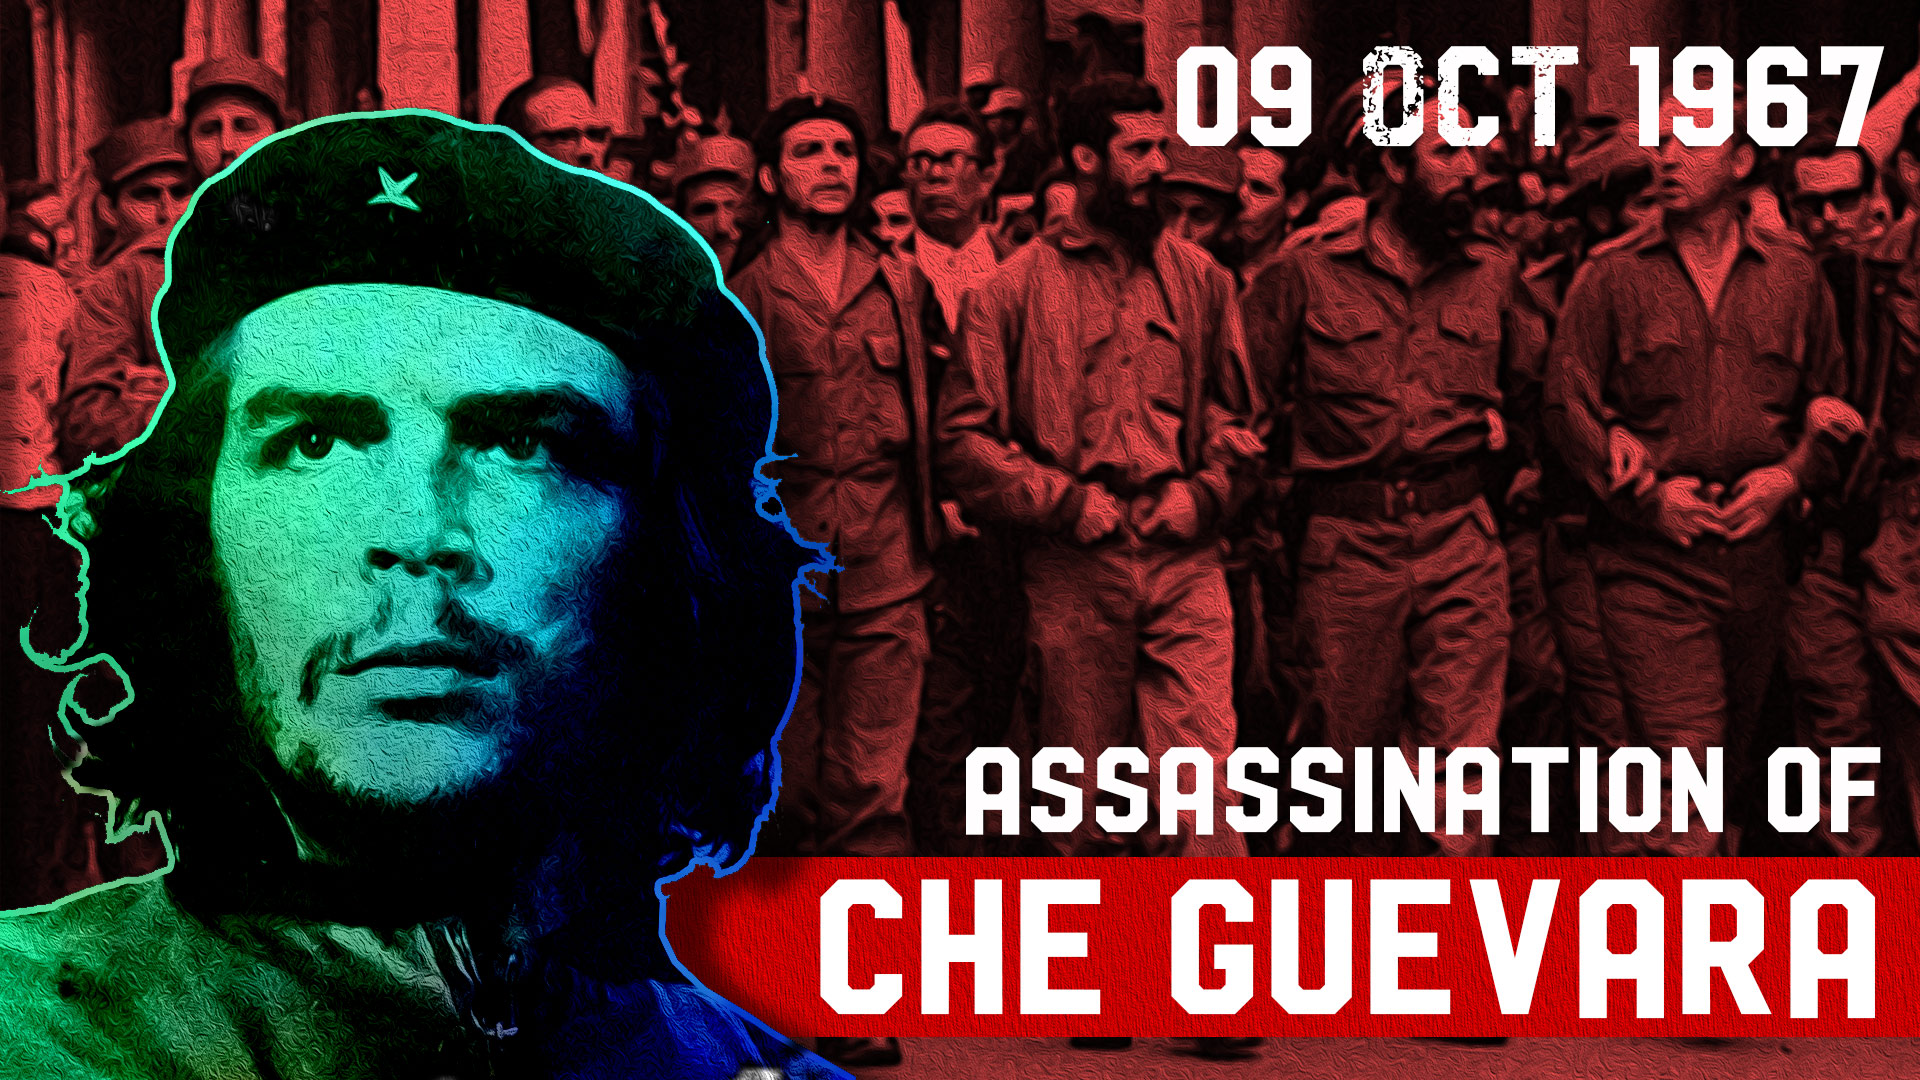 Assassination of CHE GUEVARA 1967